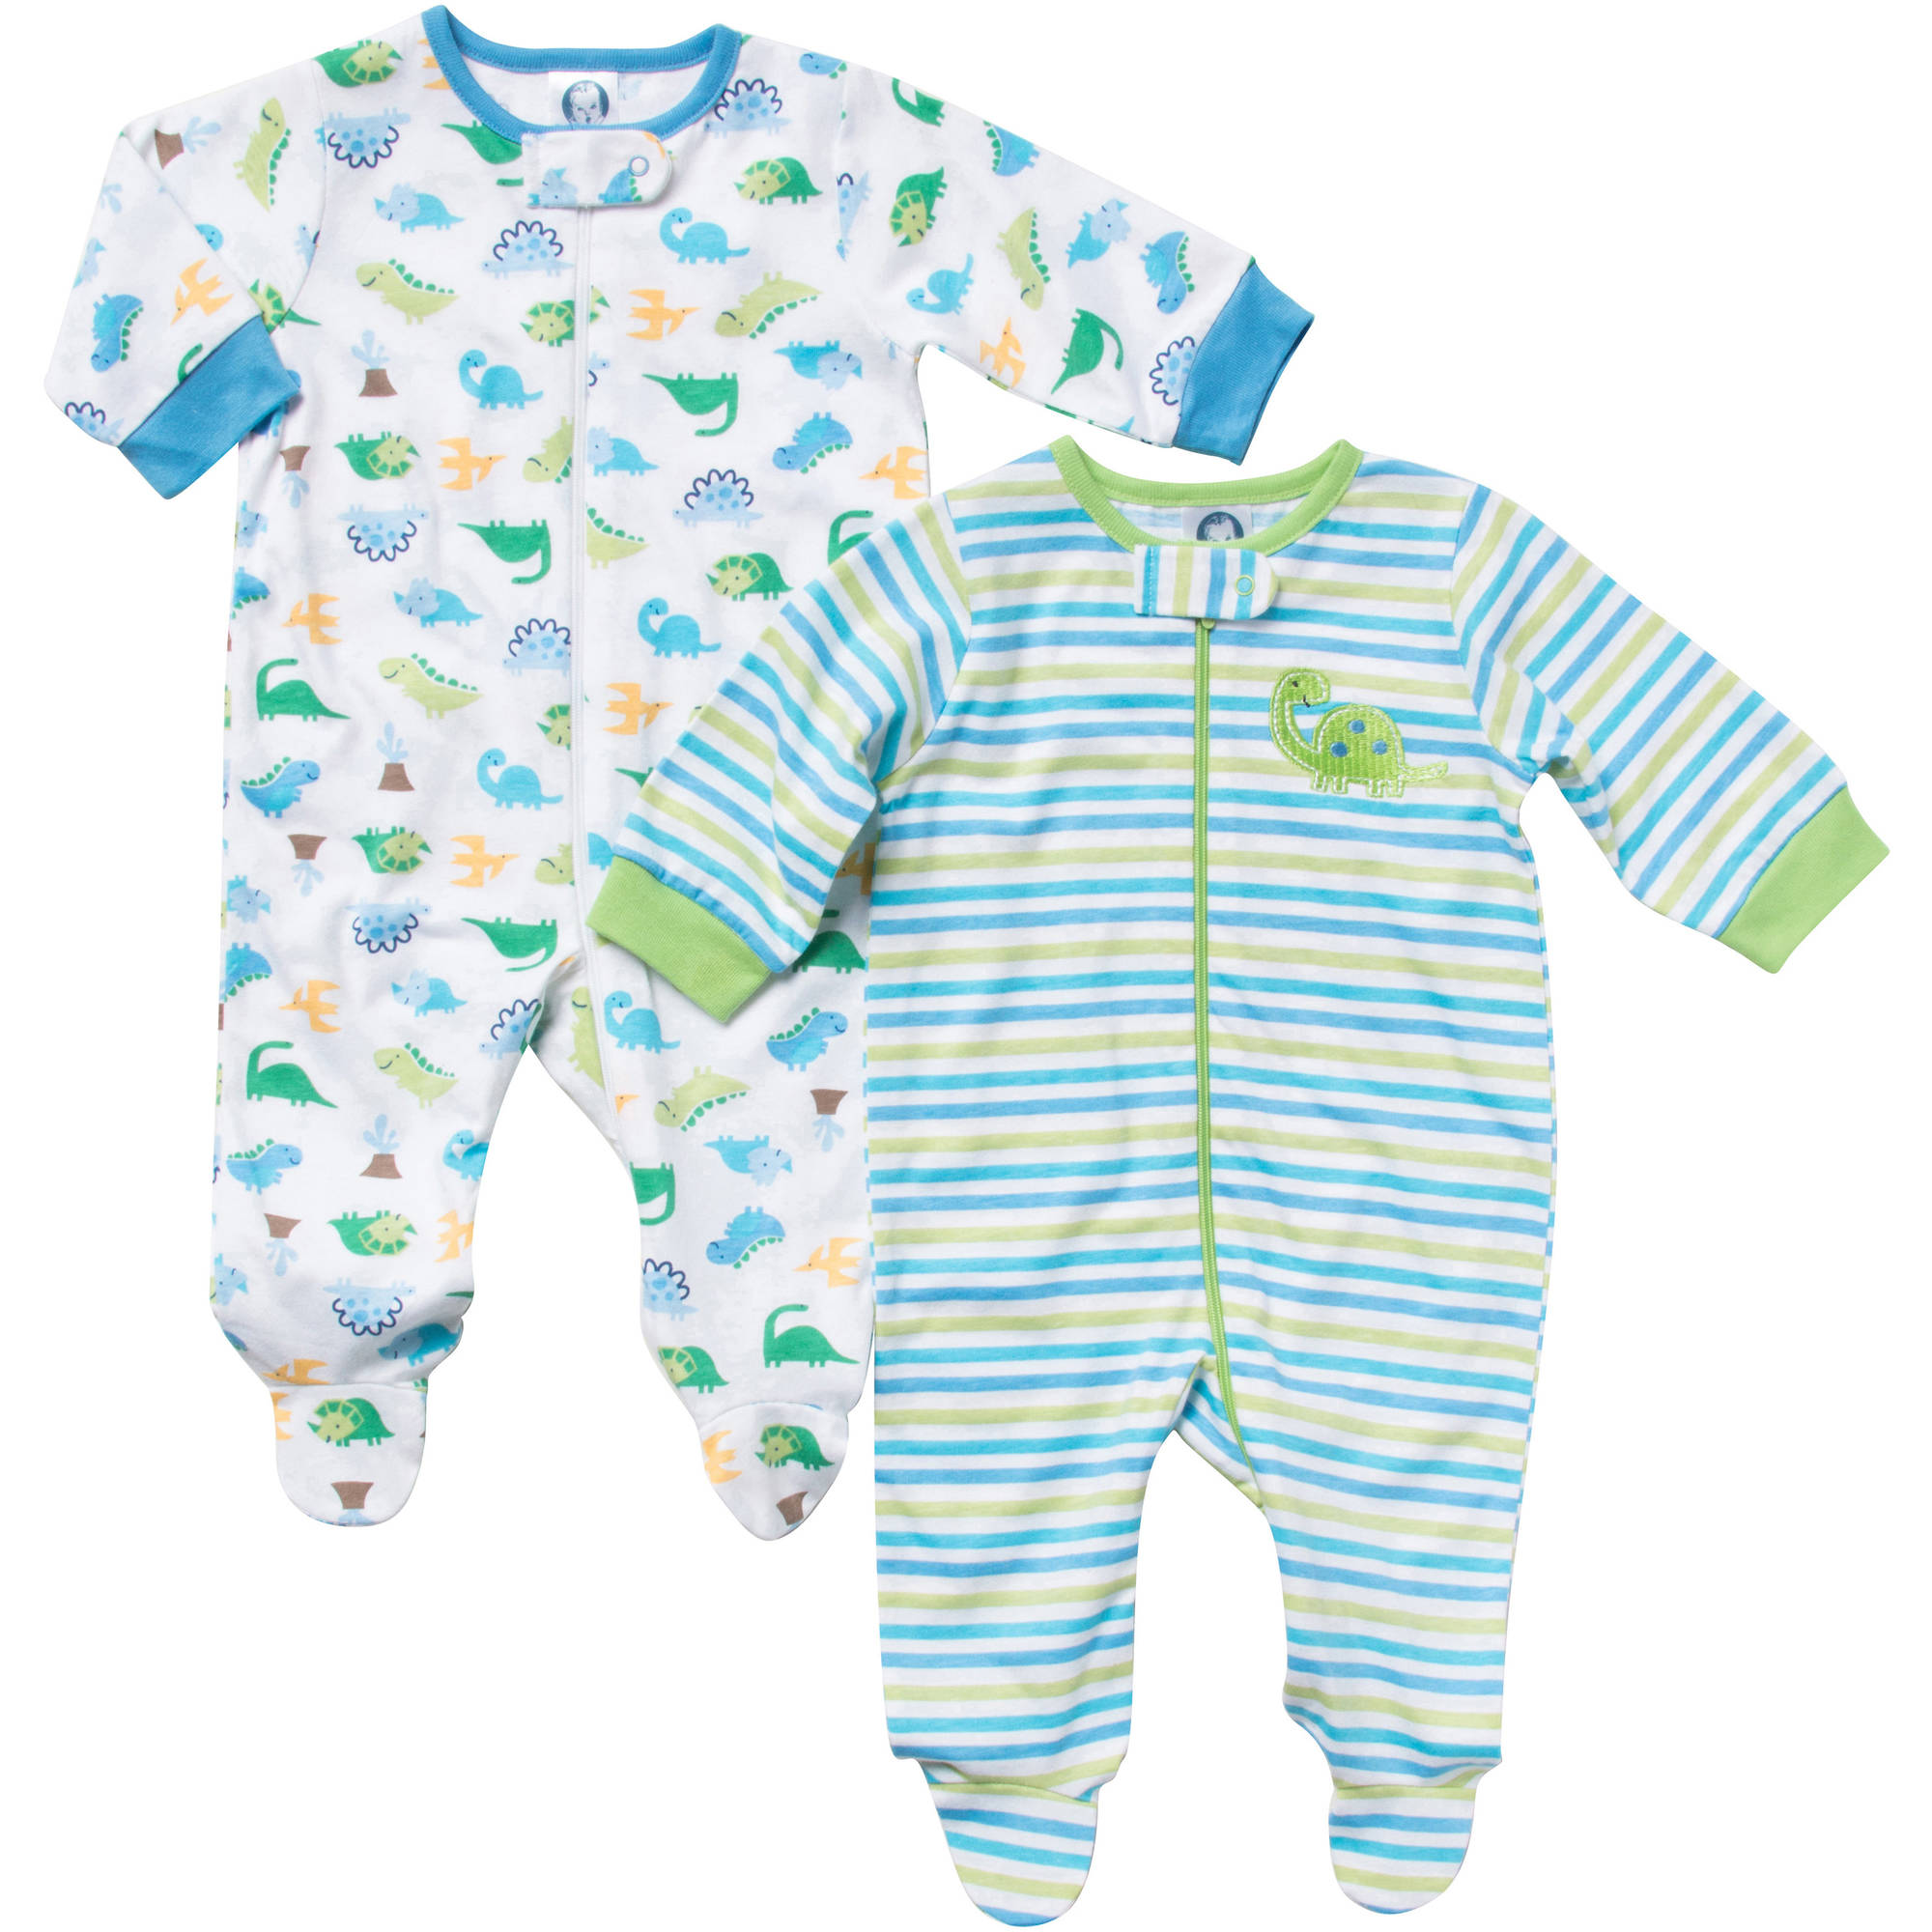 Gerber Newborn Baby Boy Zip Front Stripes Sleep N Play, 2-Pack